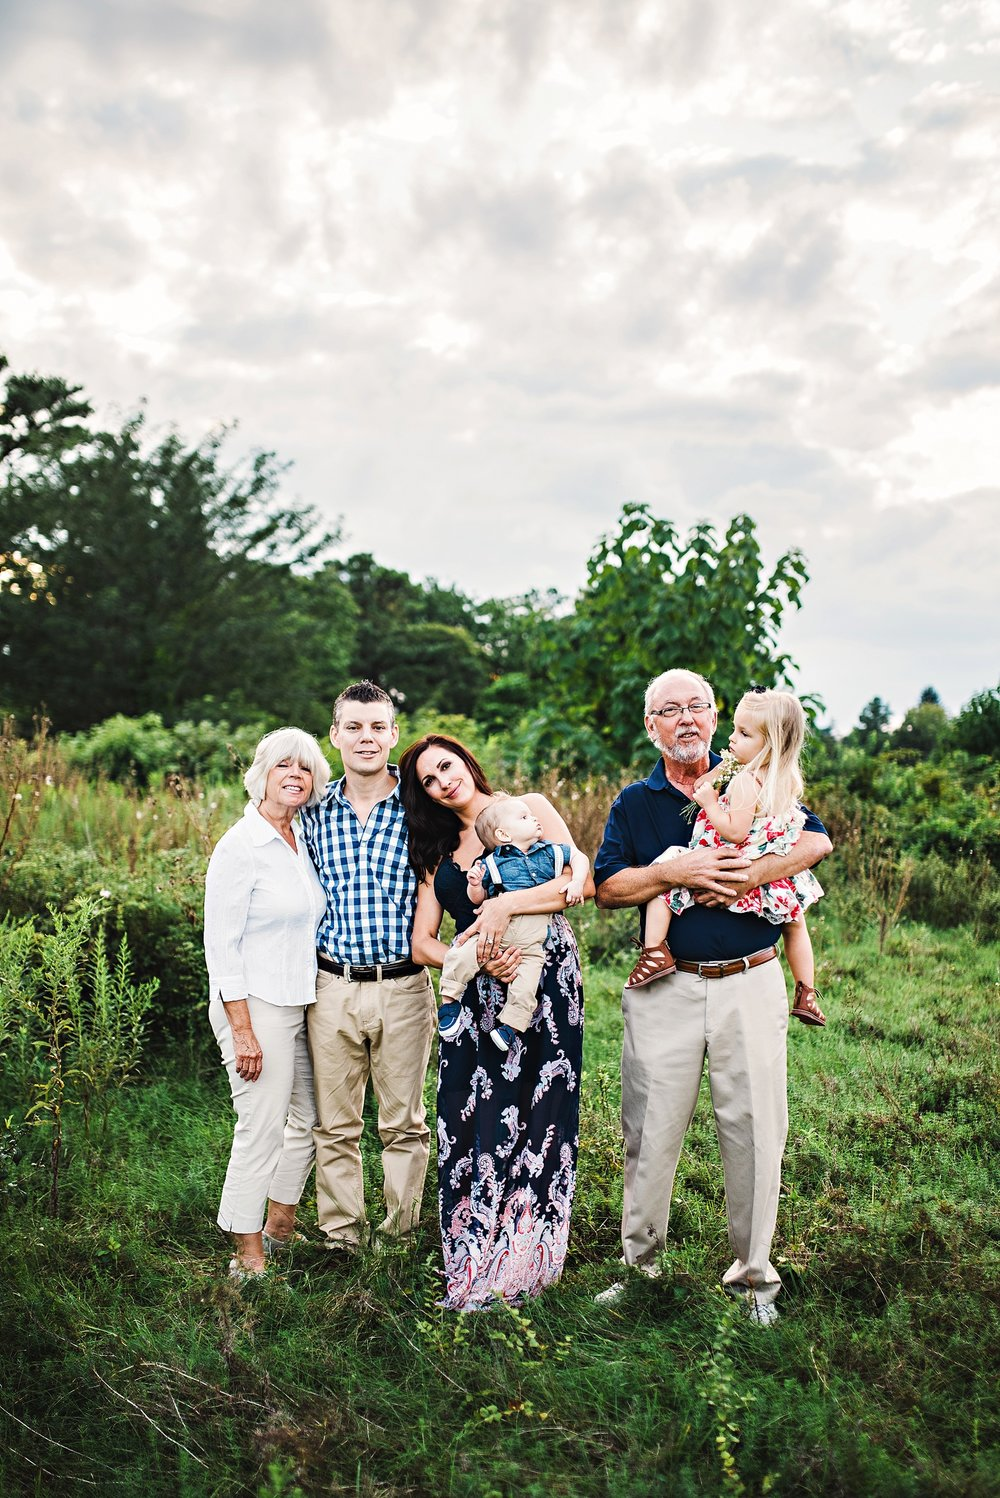 loudoun-county-family-photographer-10.jpg